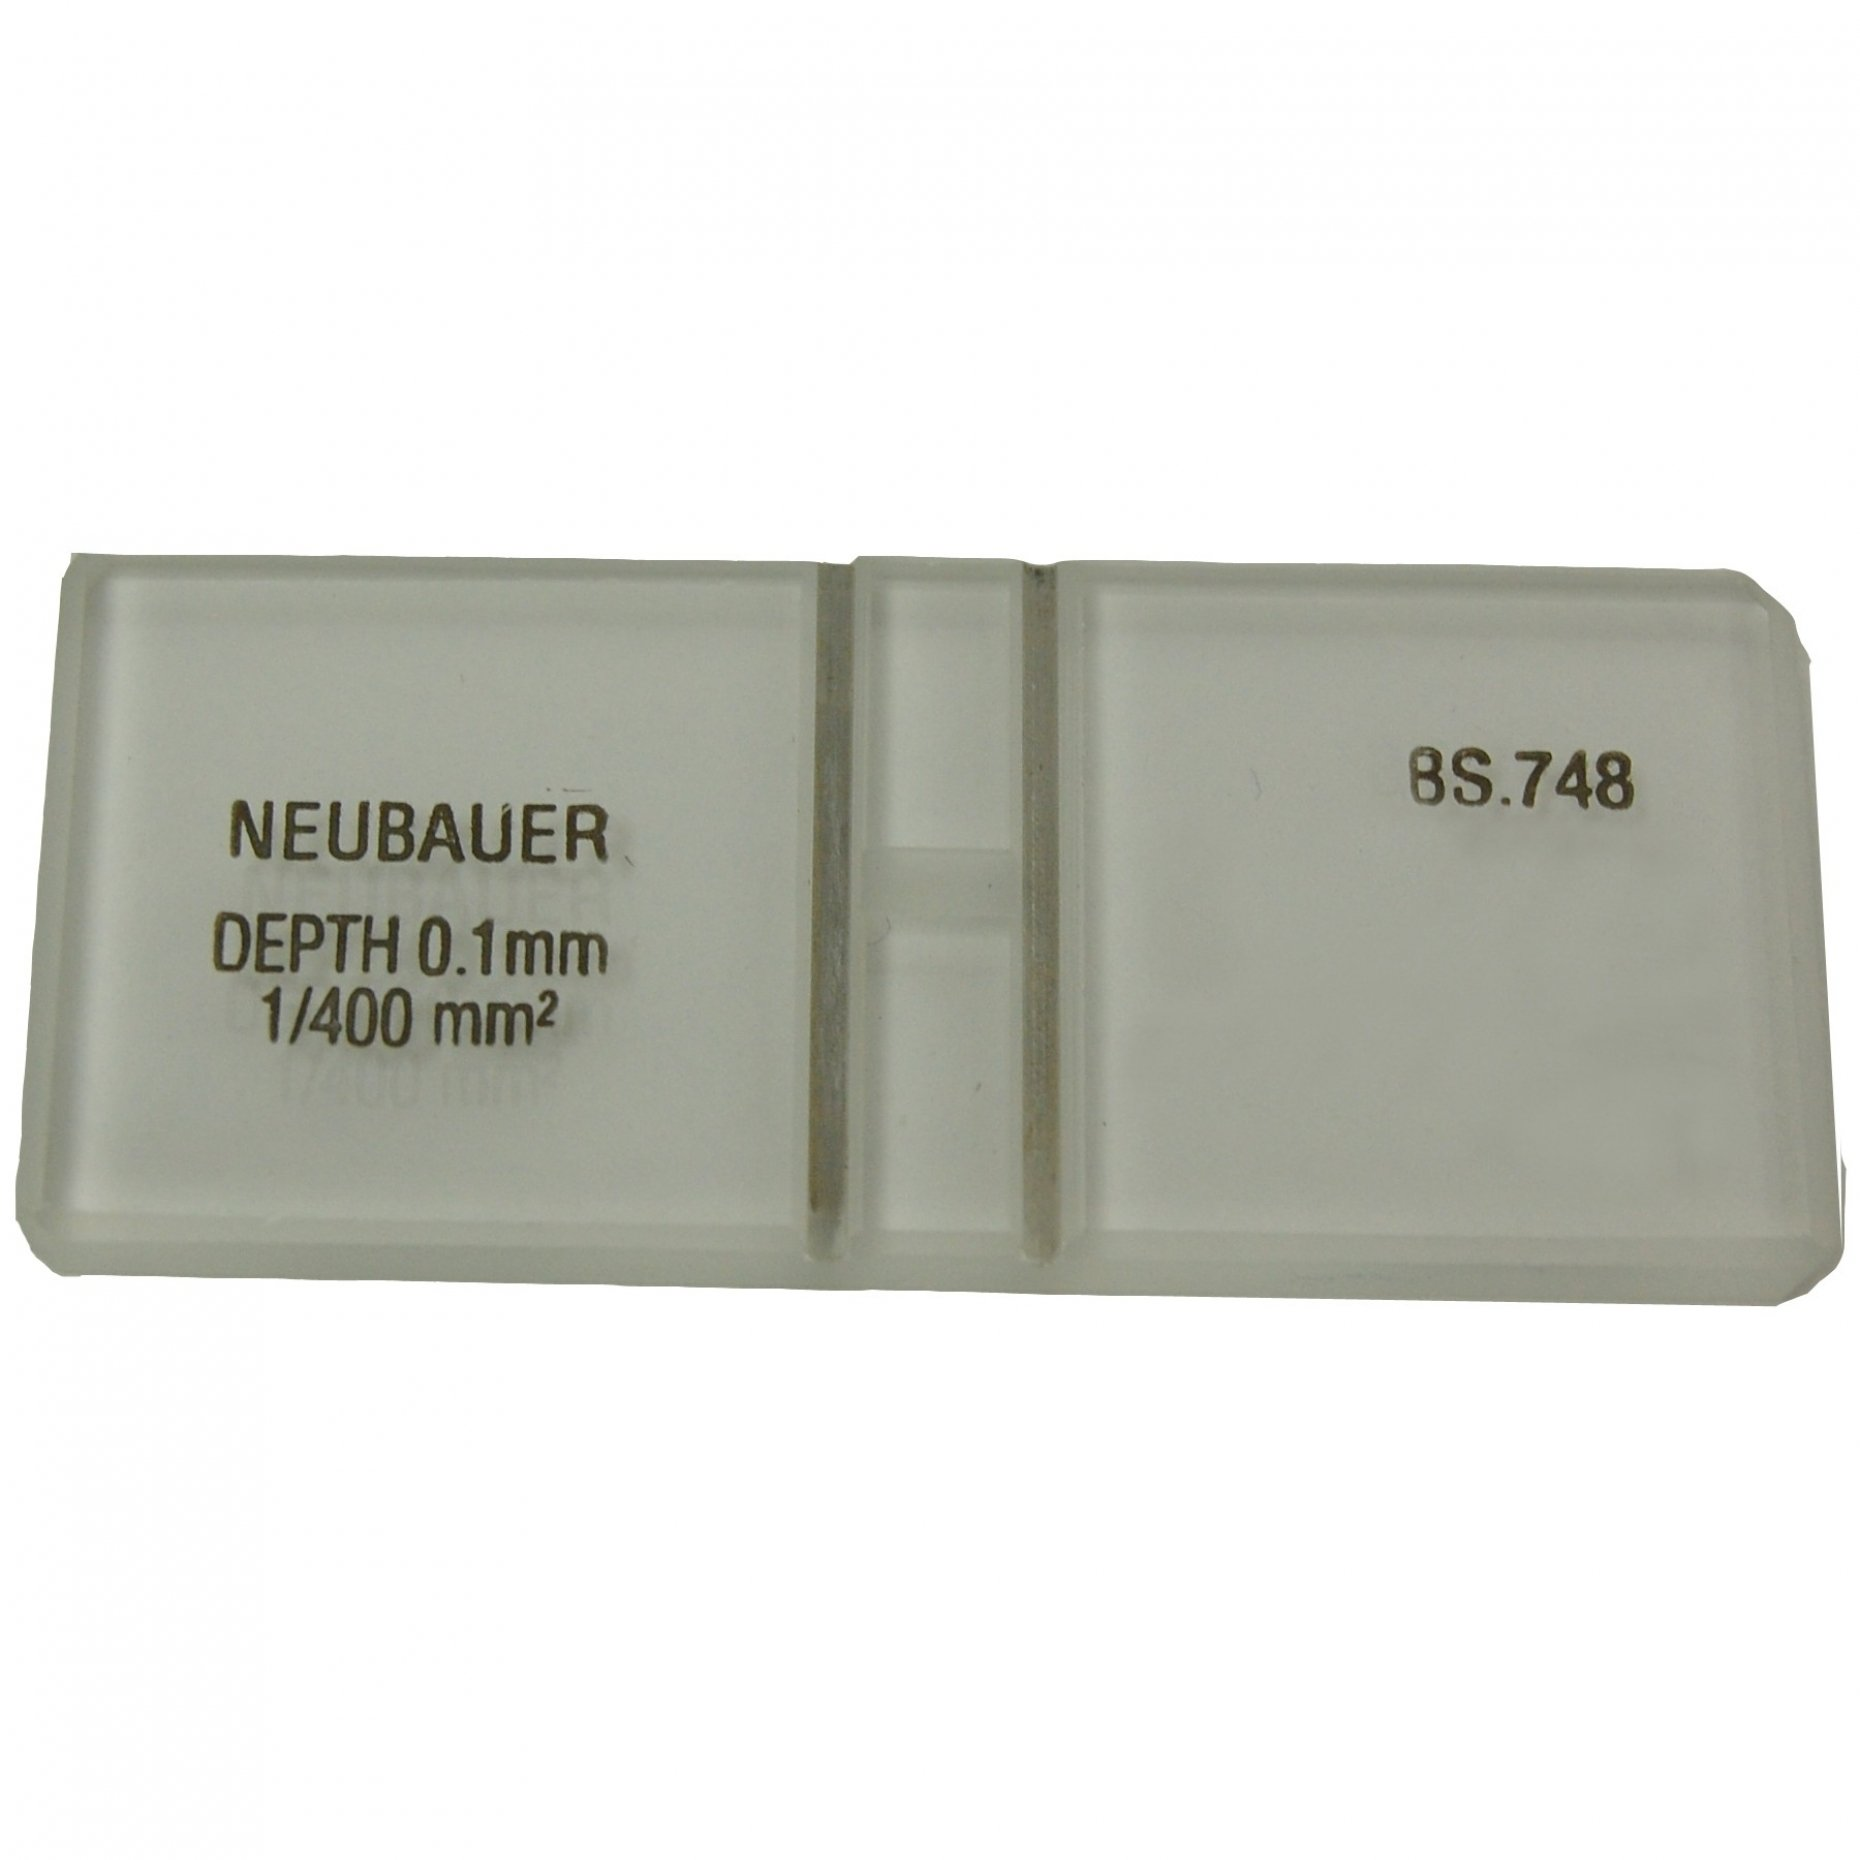 Neubauer Counting Chamber Product